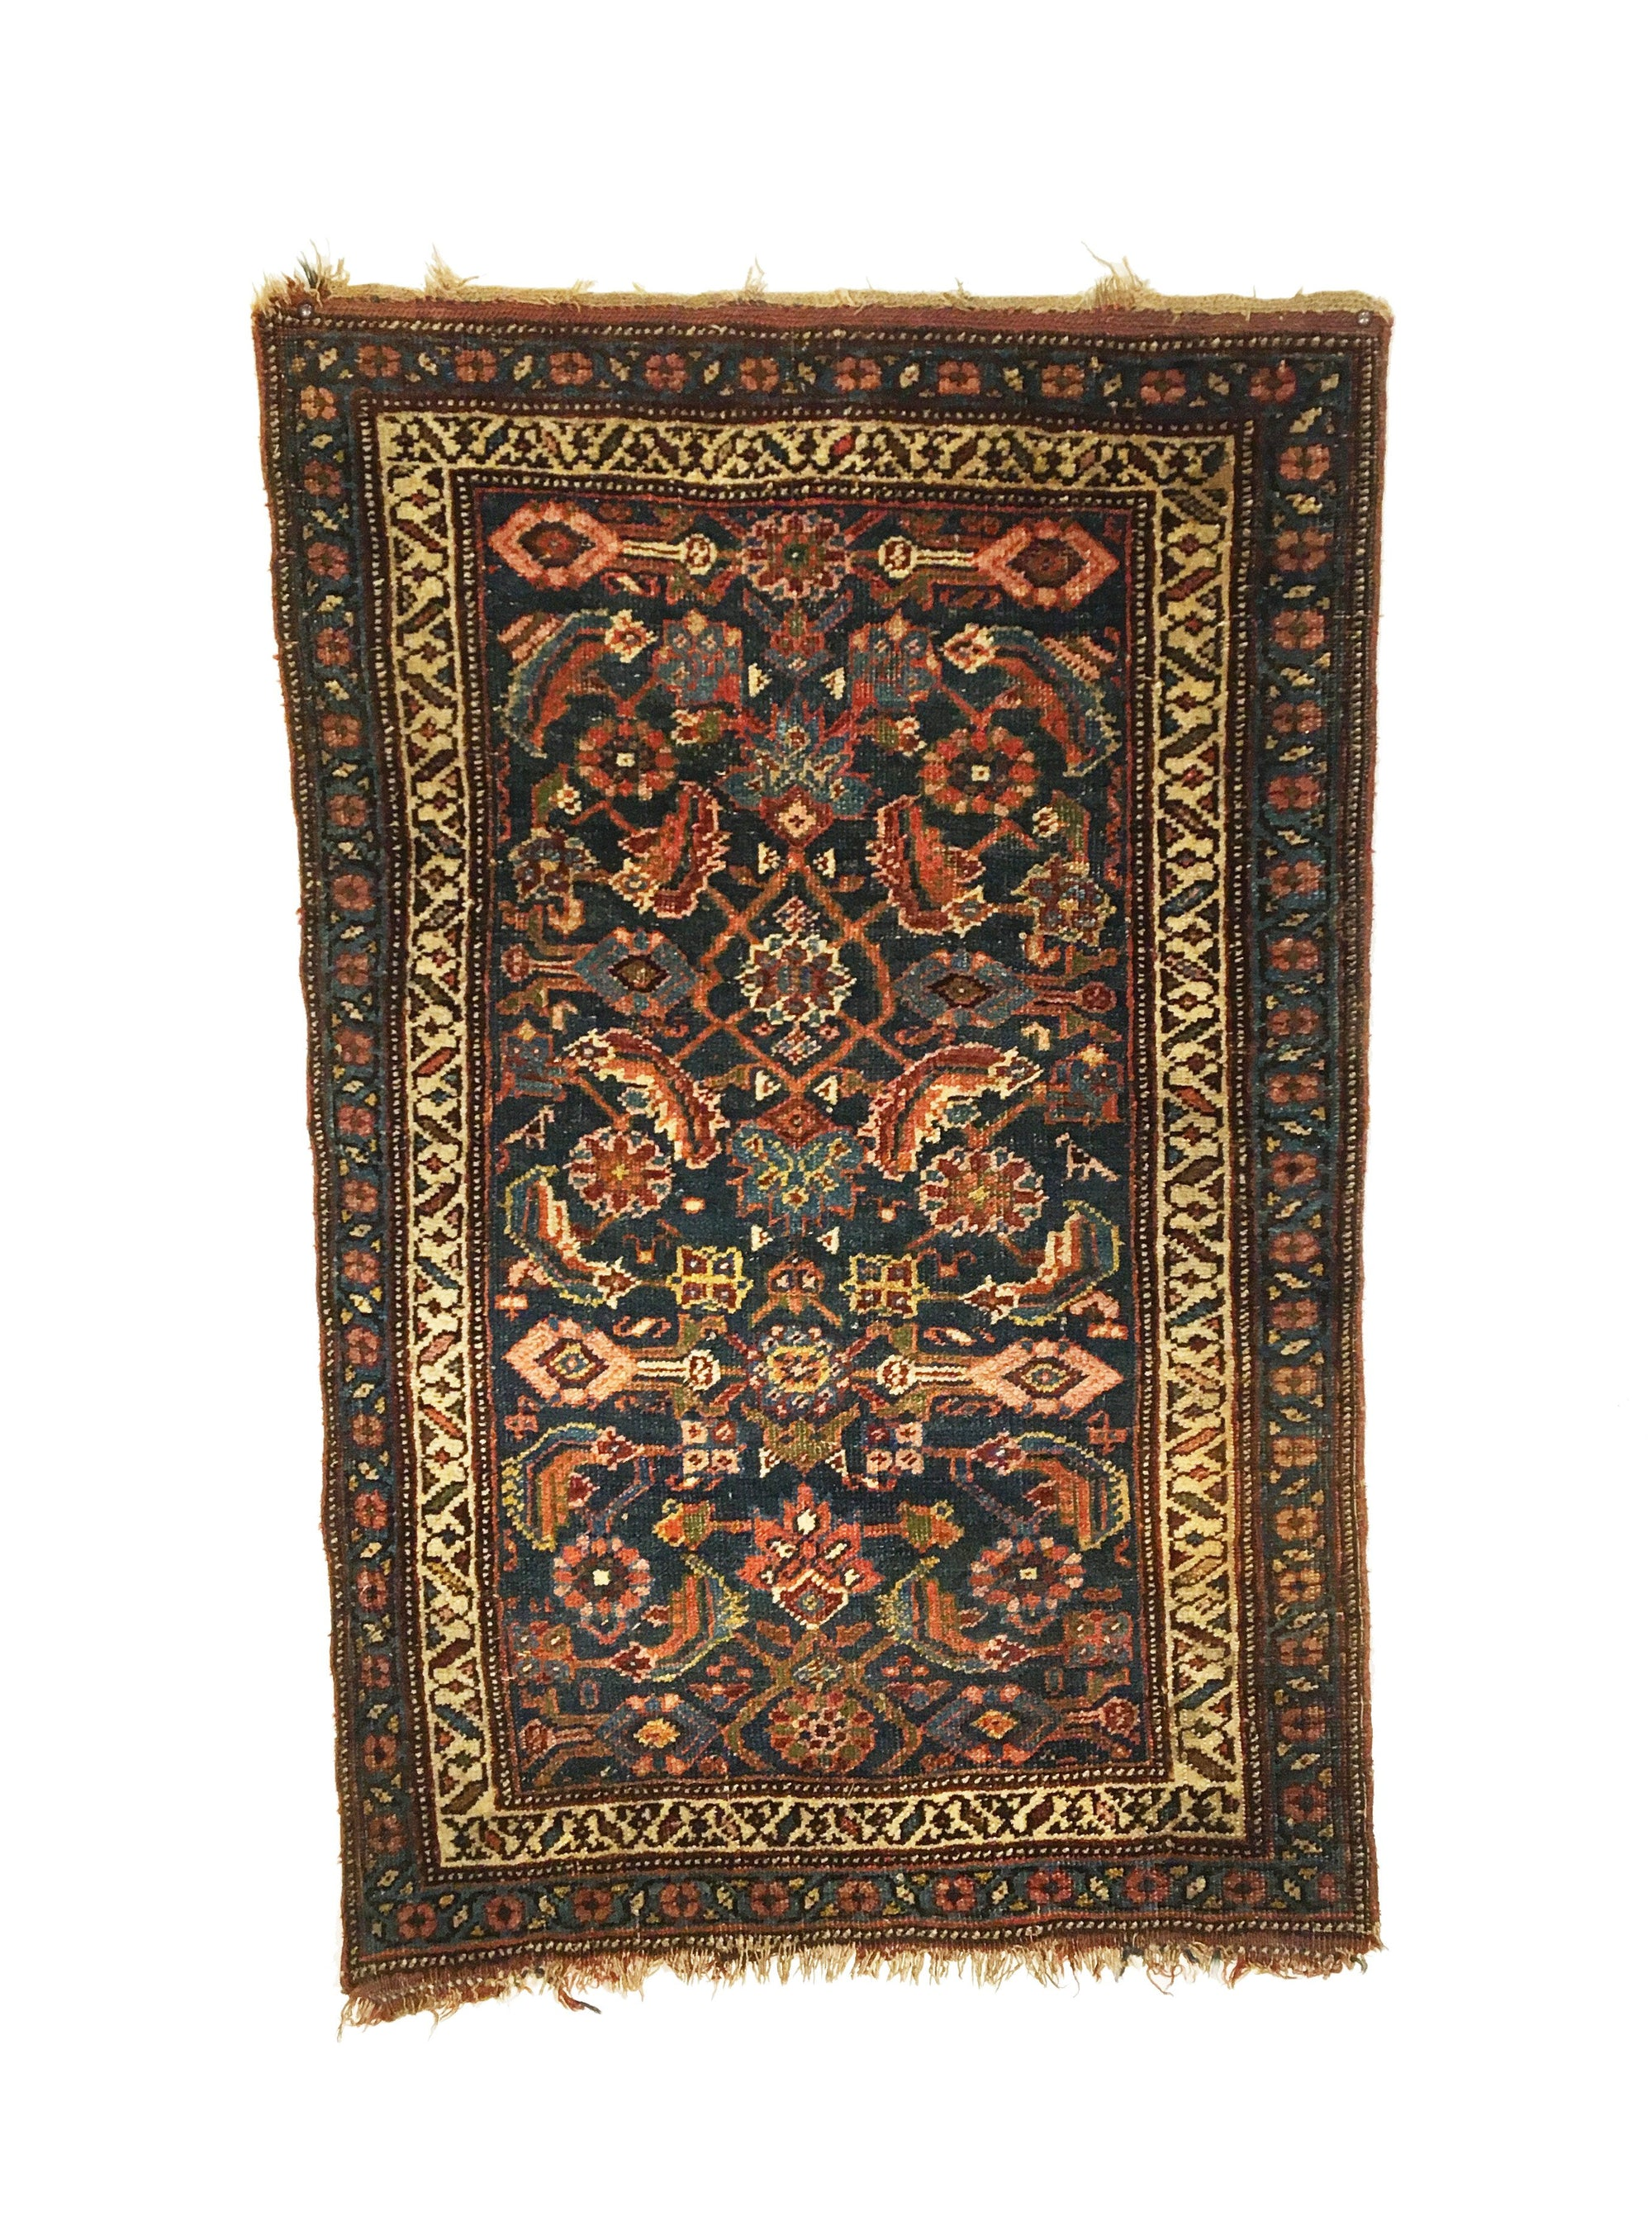 Antique Bidjar Small Rug 2'3 x 3'7